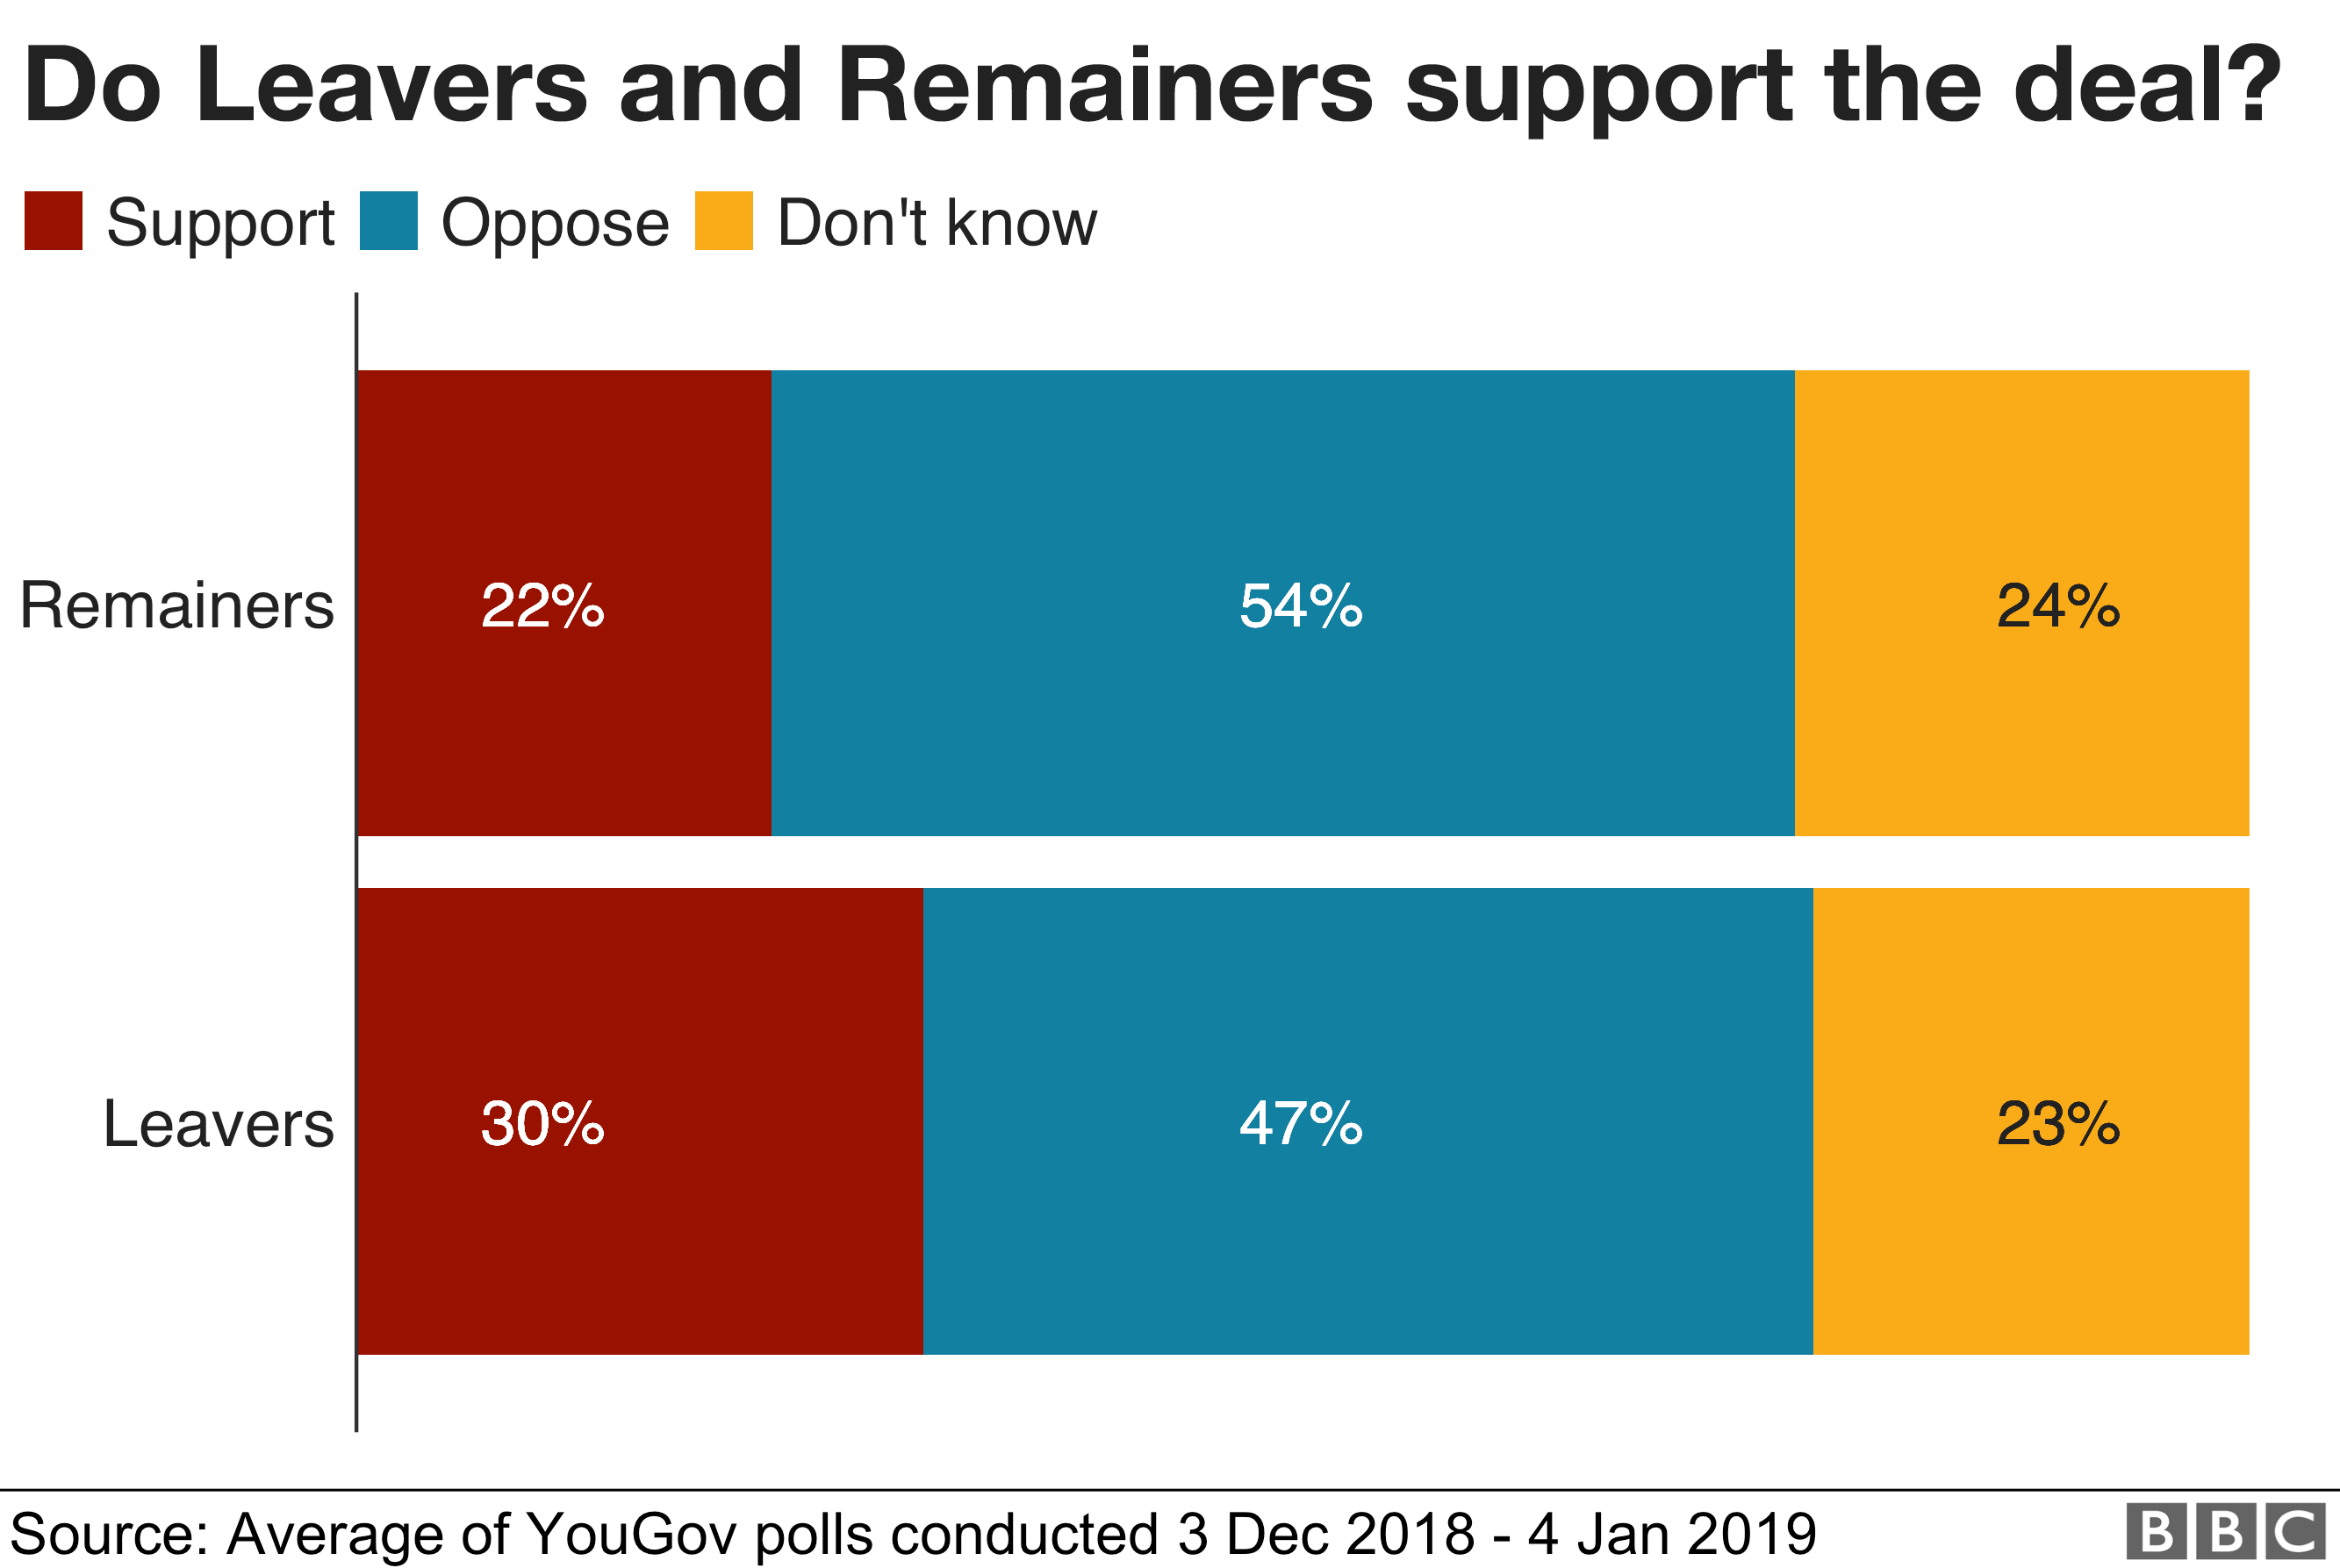 Do Leavers and Remainers support the deal?